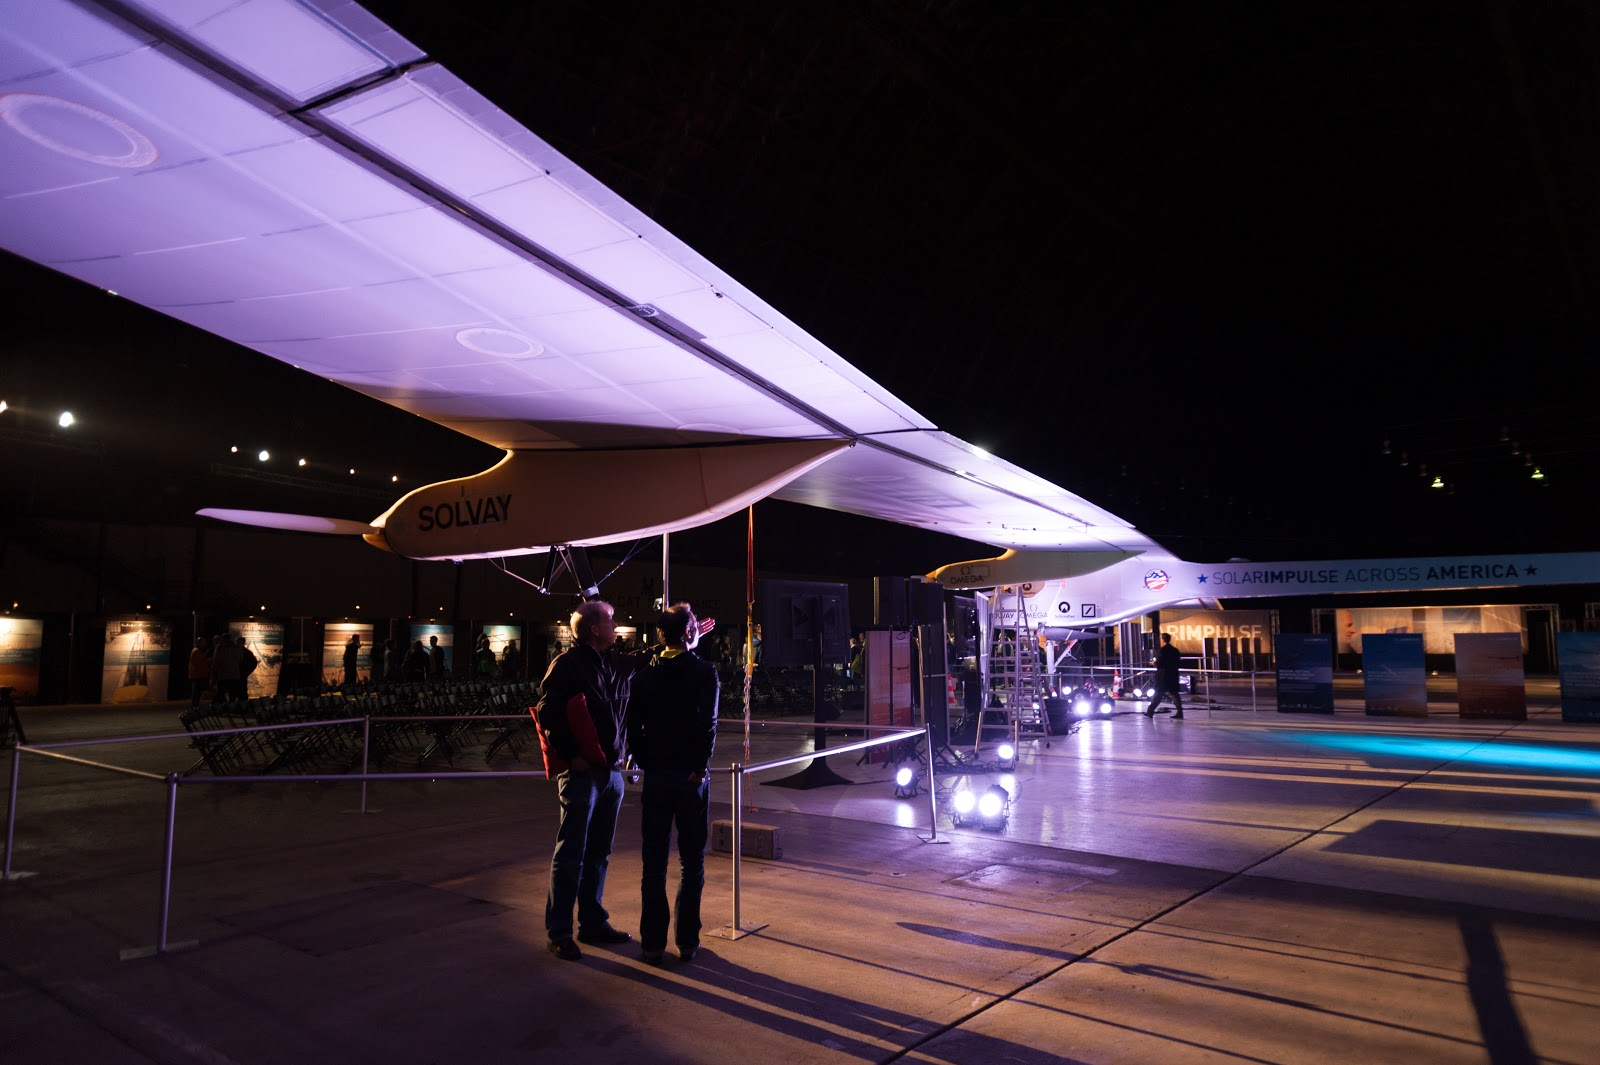 Admirers of Solar Impulse in Hangar 2